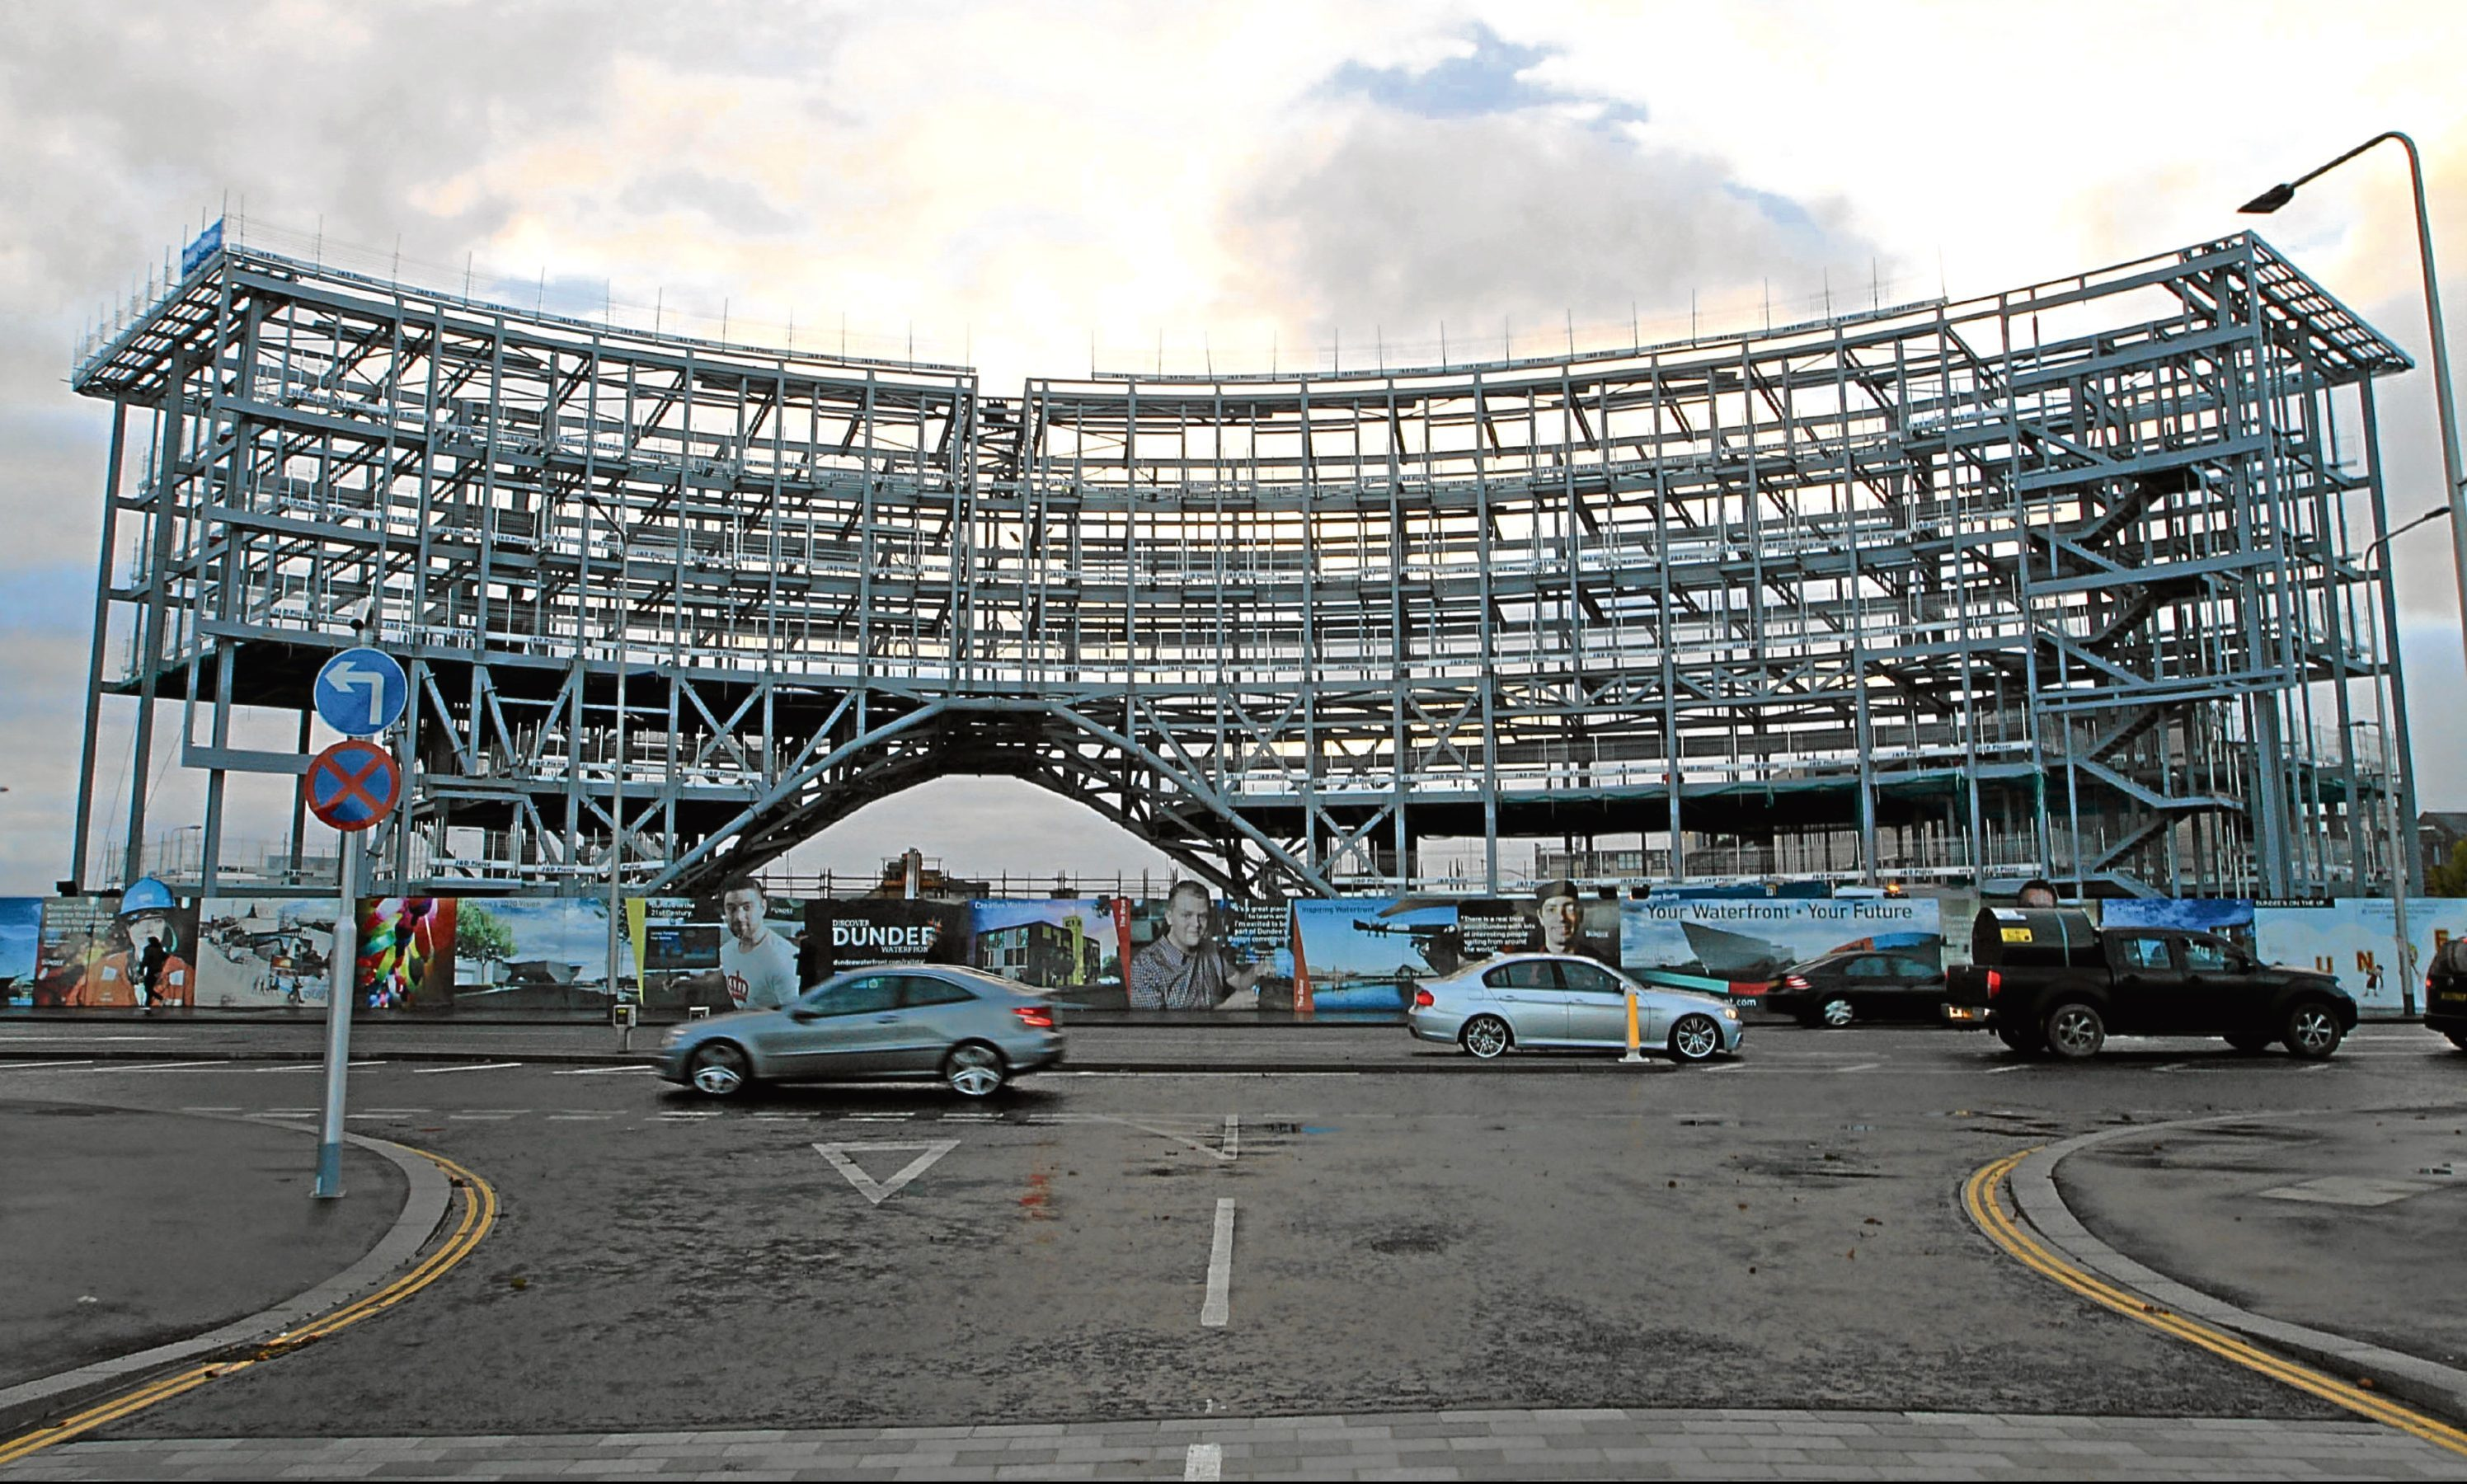 Dundee's new railway station in development